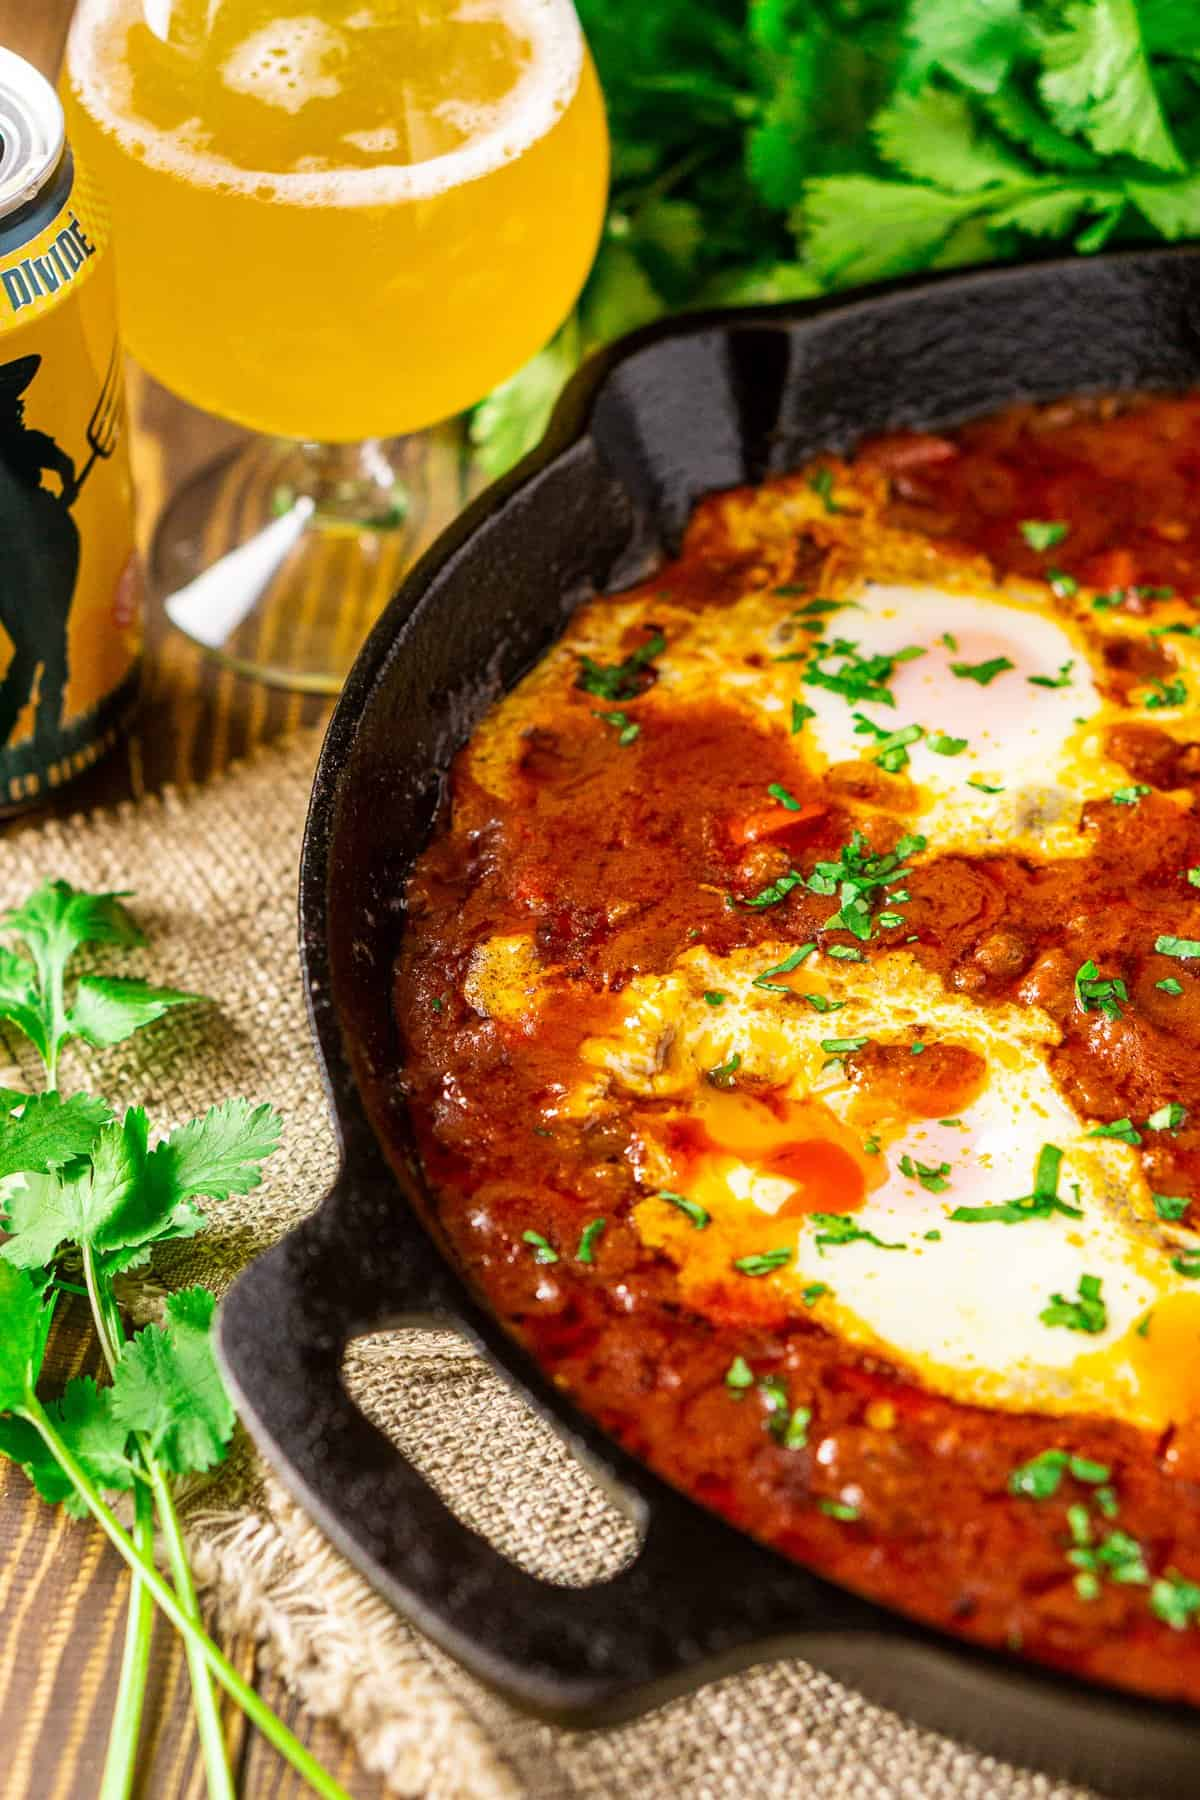 The beer and Lamb Shakshuka after breaking into the yolks with cilantro behind it.